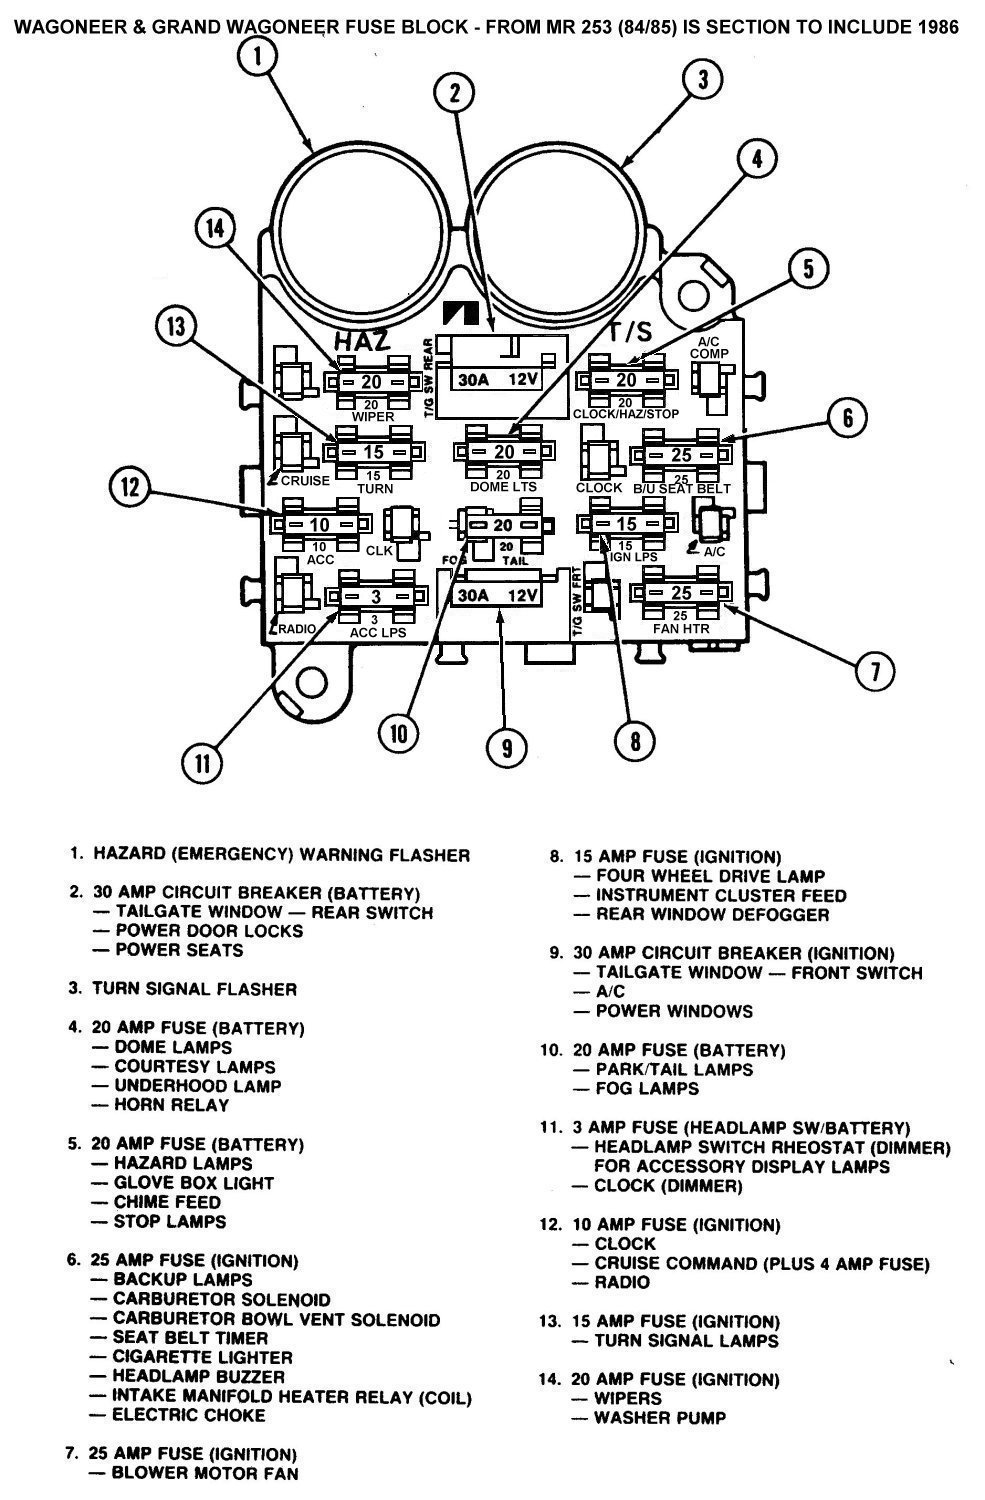 i have a 1984 4 0 inline 6 and i need a wiring diagram for engine control system that includes